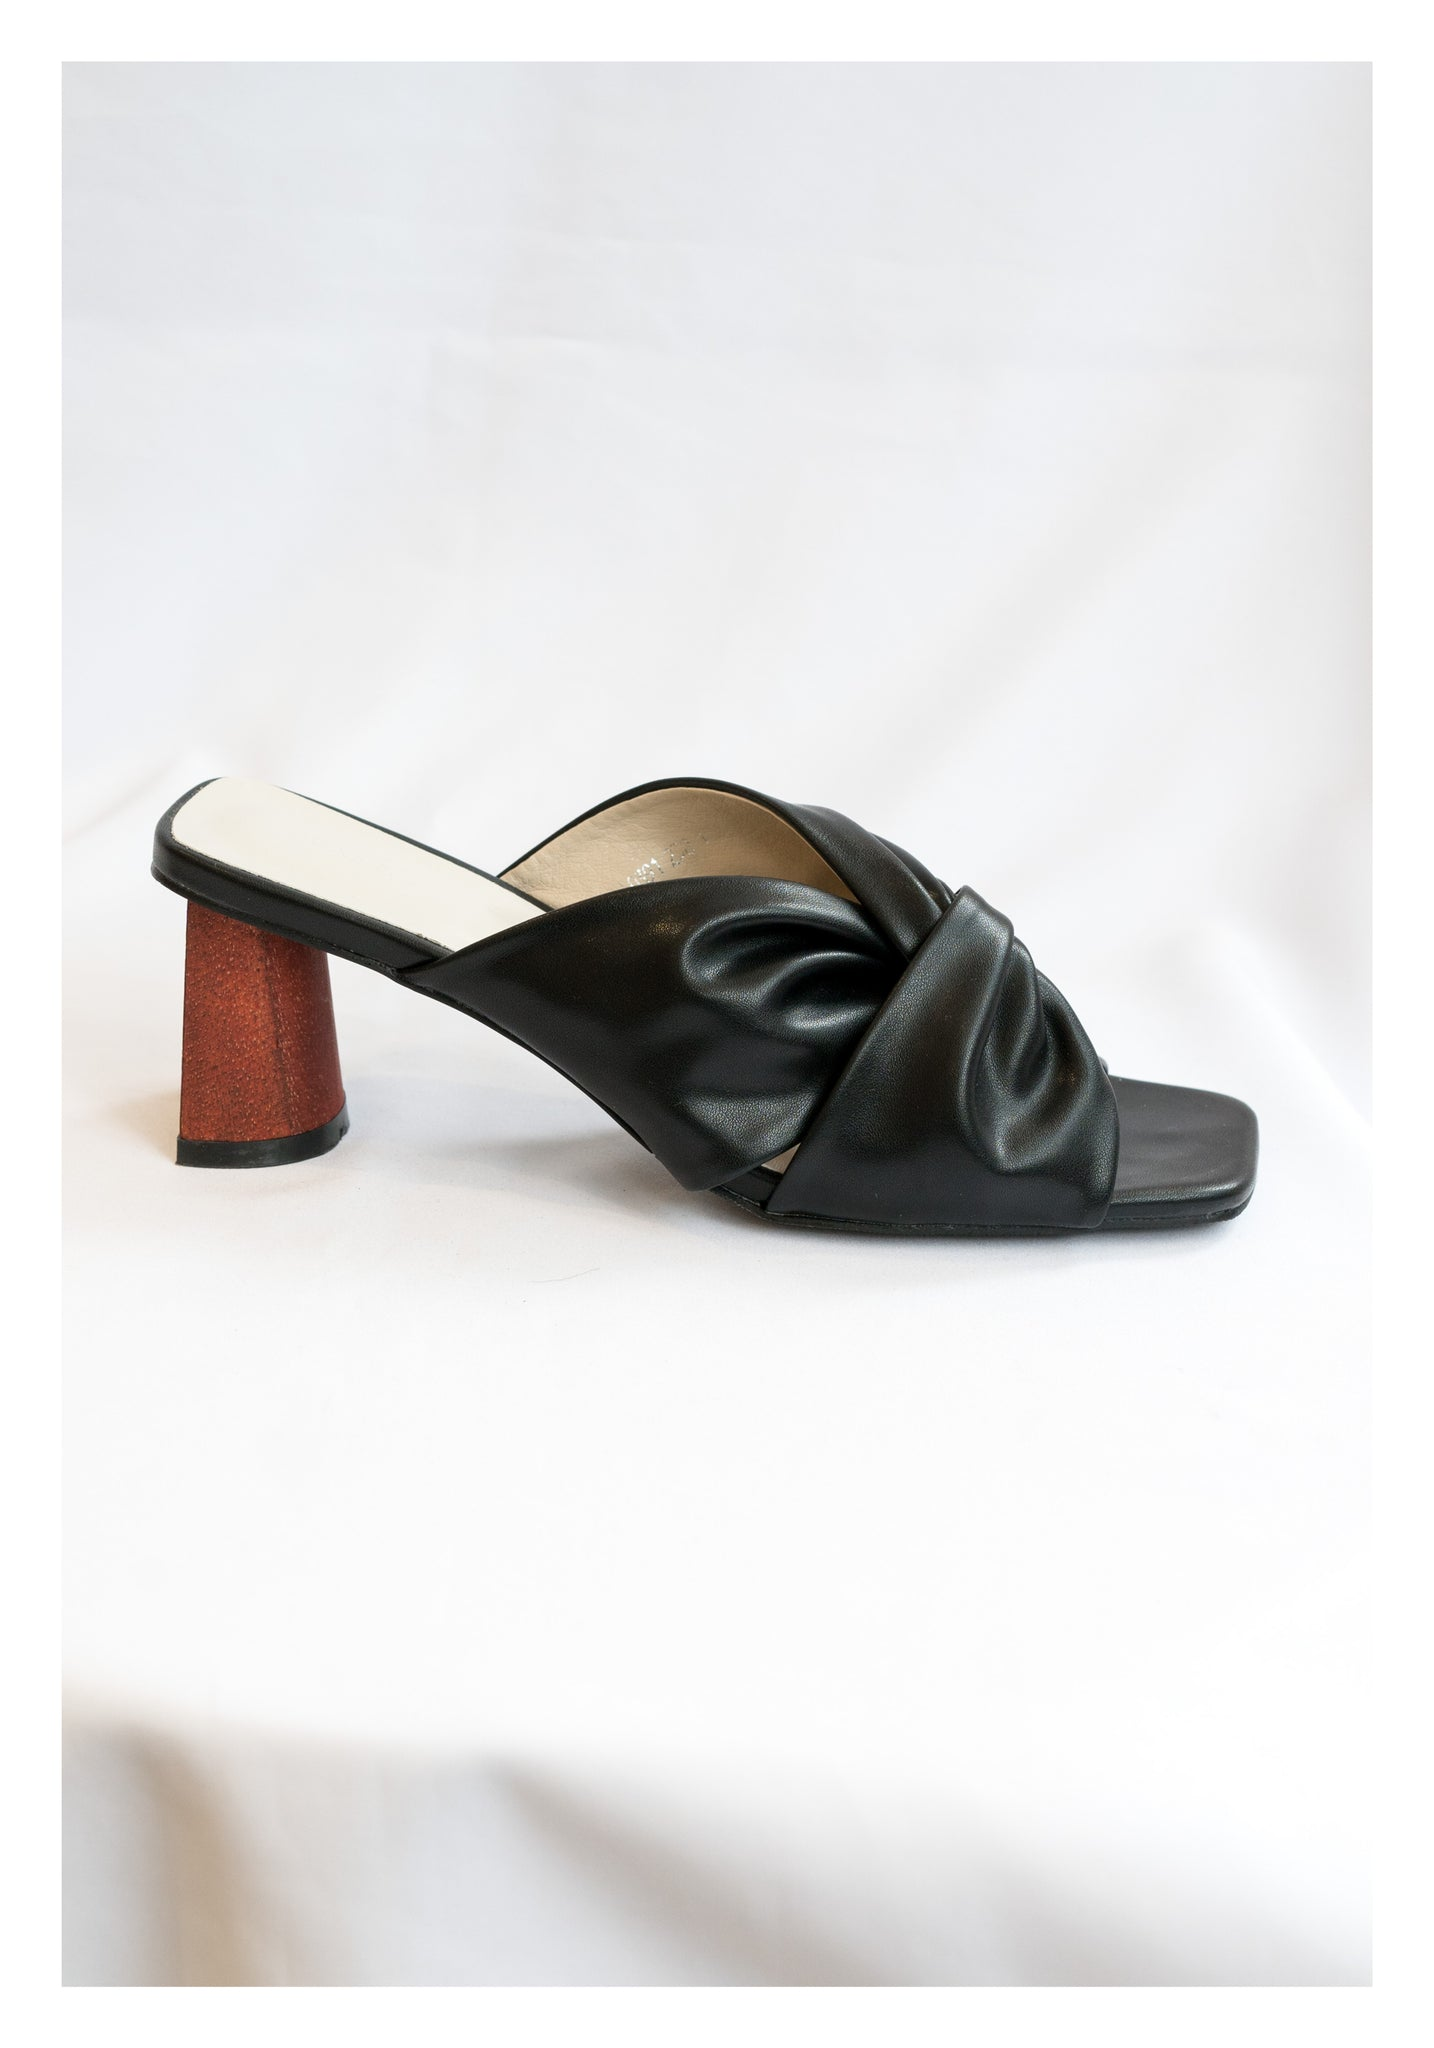 Twisted Wooden Heels Sandal Black